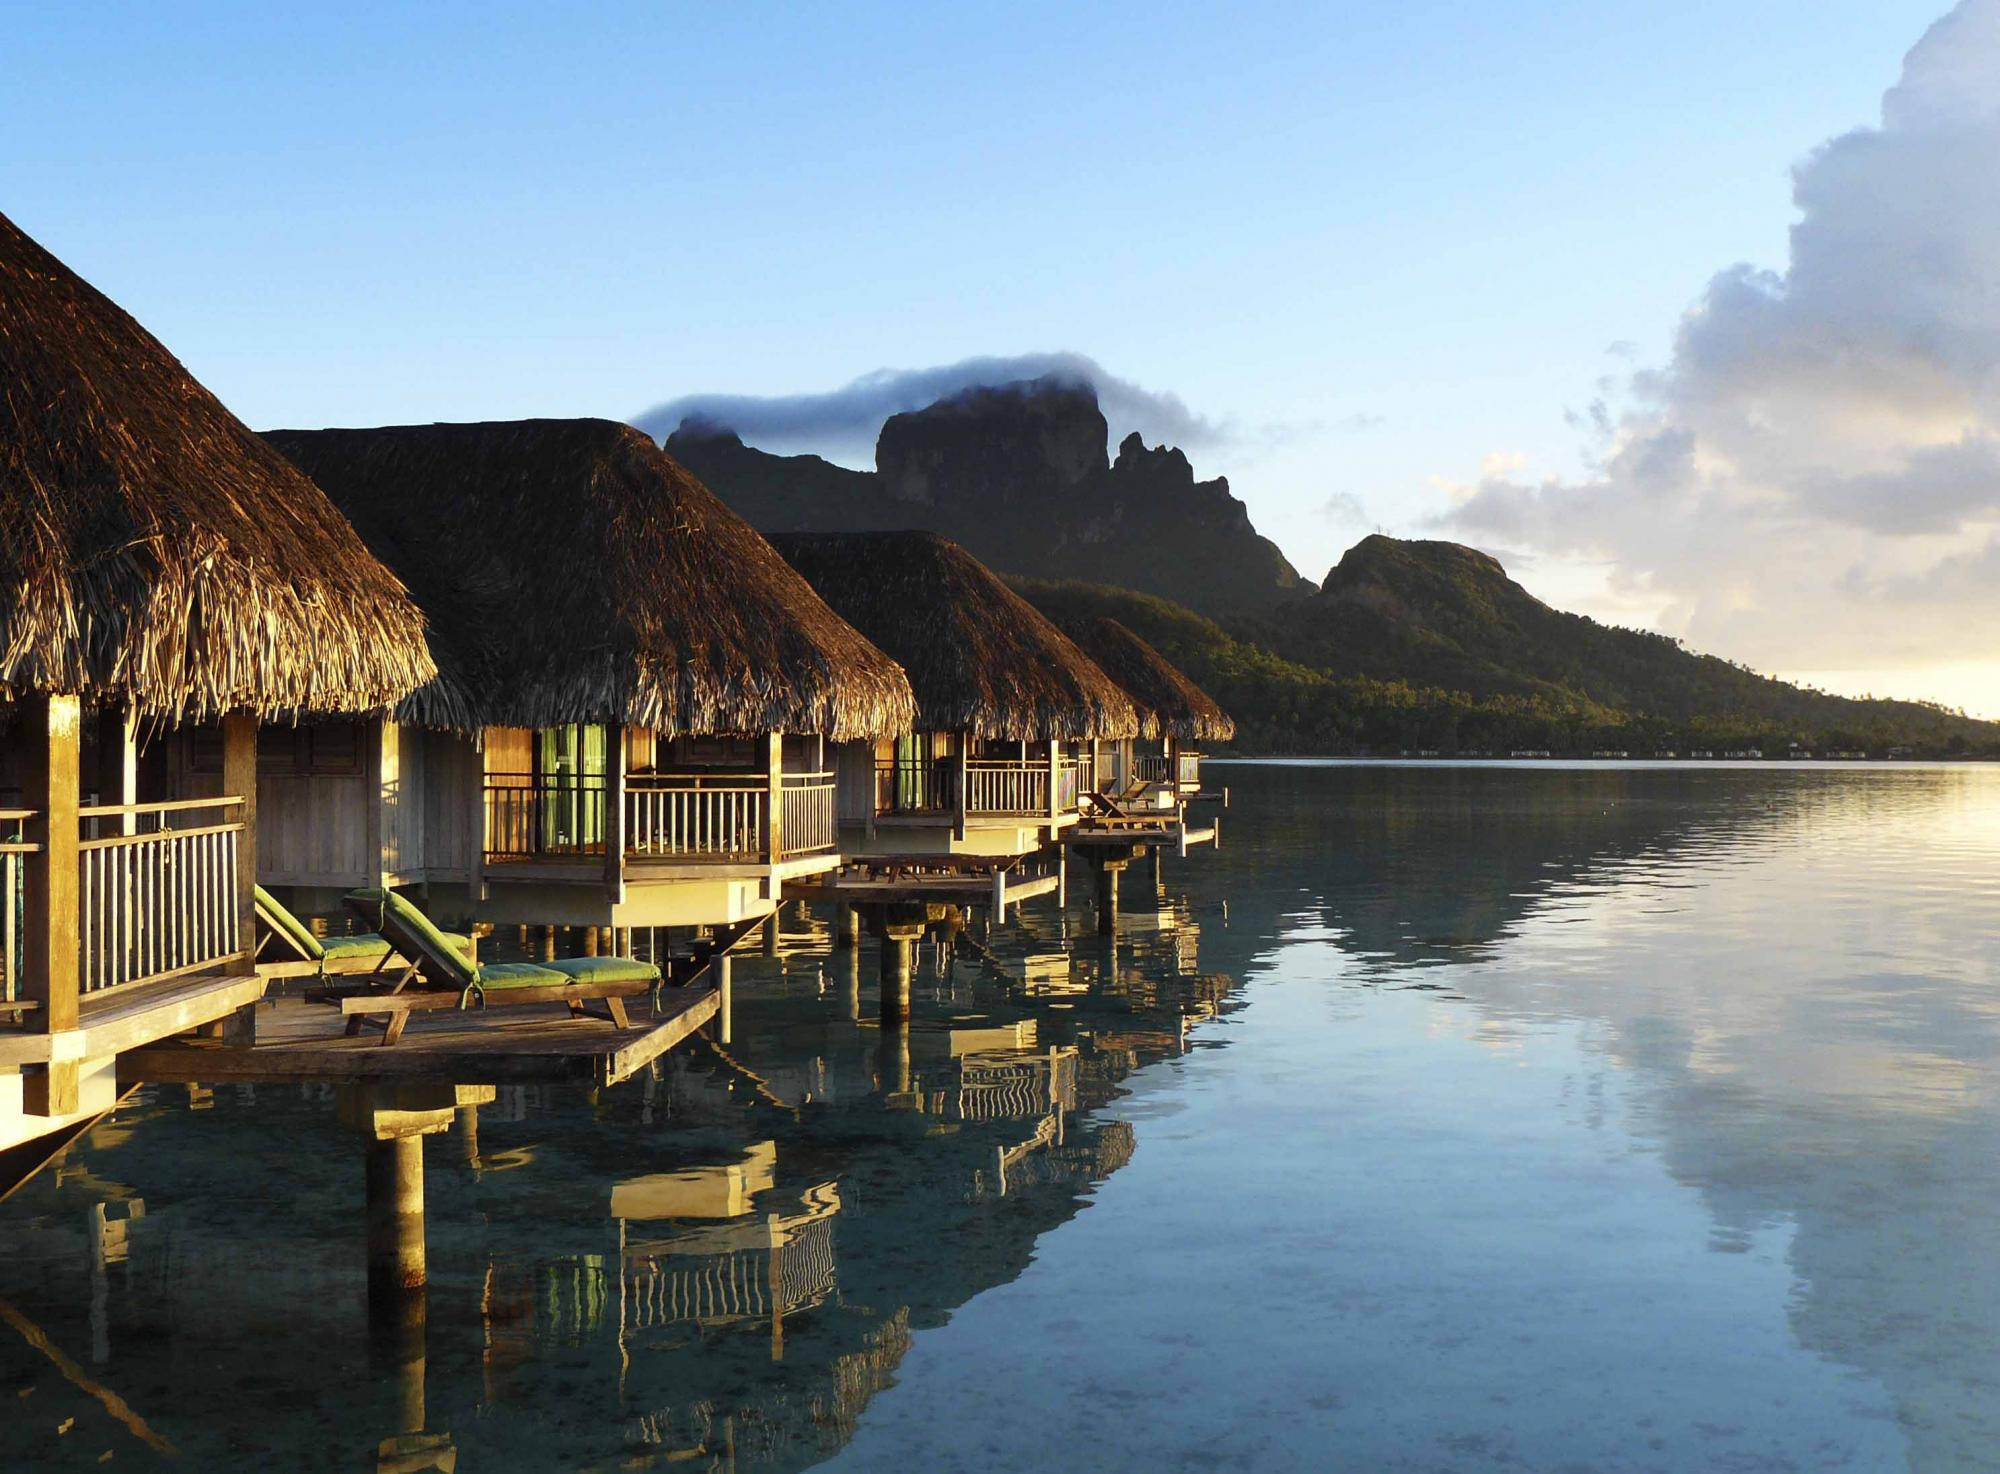 Romantic Tahiti Vacation Private Secluded Remote The Robinson Crusoe Experience Zicasso